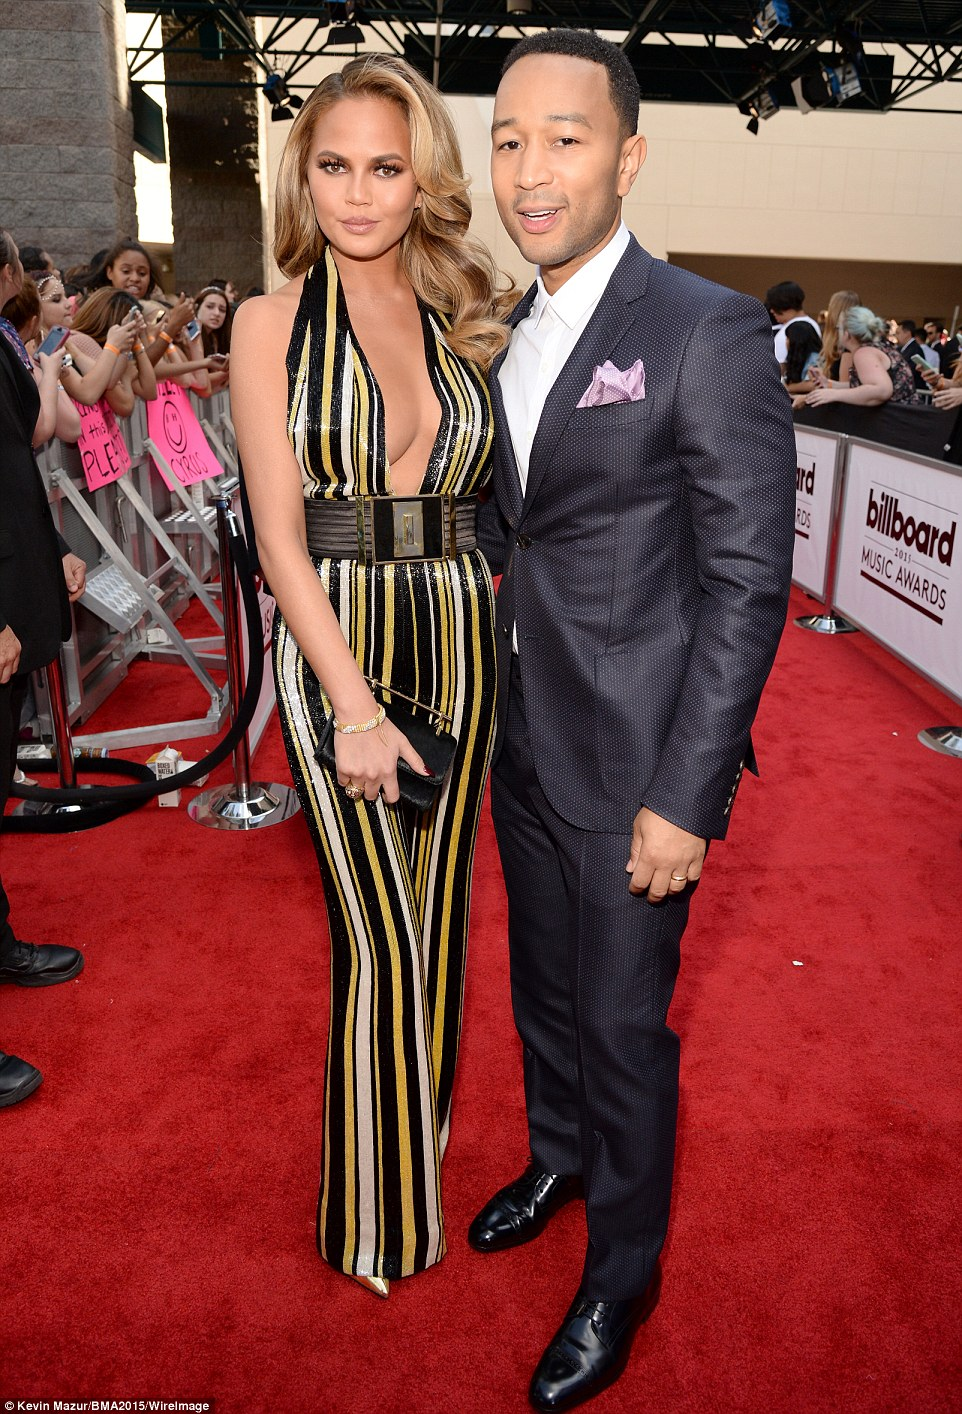 Cute couple: 29-year-old Chrissy was all lashes and cleavage in her striped jumpsuit while posing on the arm of her husband John Legend, who's up for seven awards and will perform Like I'm Gonna Lose You with Meghan Trainor